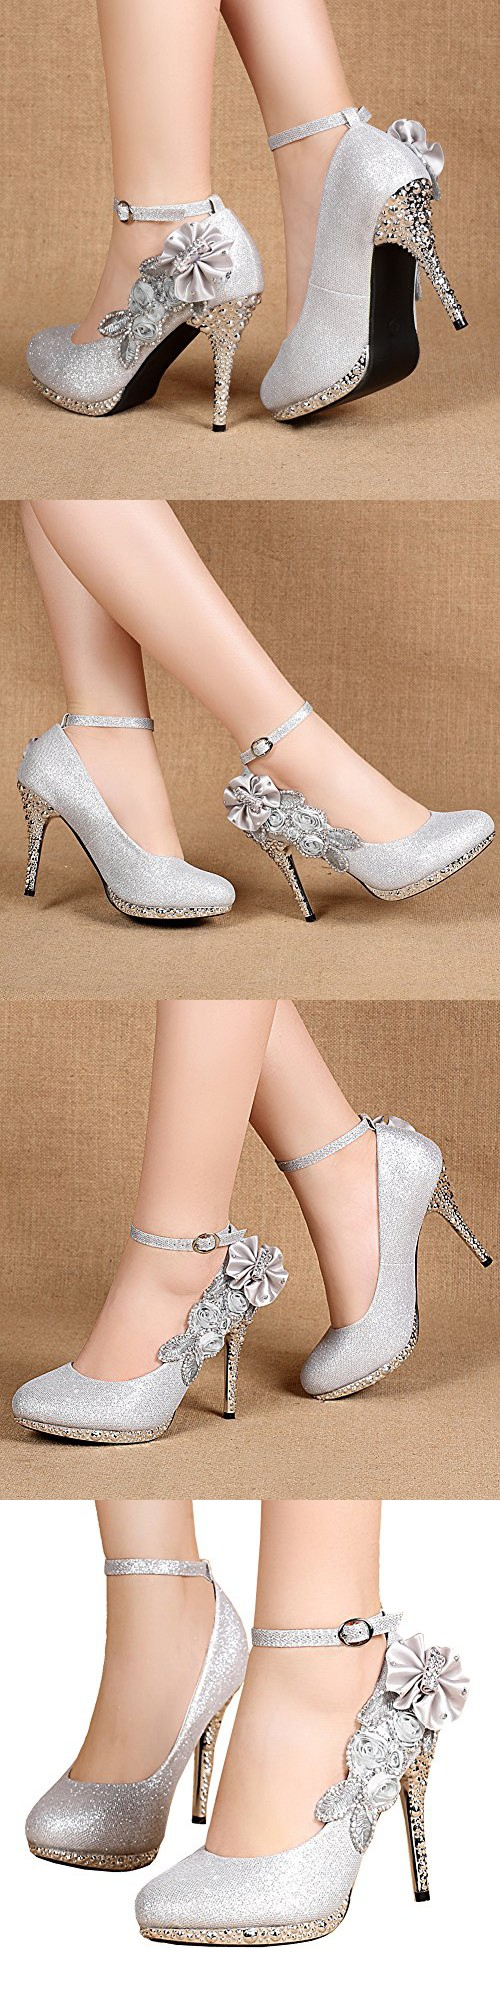 512b998154c0 Getmorebeauty Women s Glitter Silver Lace Flower Sequins Strappy Closed Toes  Dress Wedding Shoes 7 B(M) US